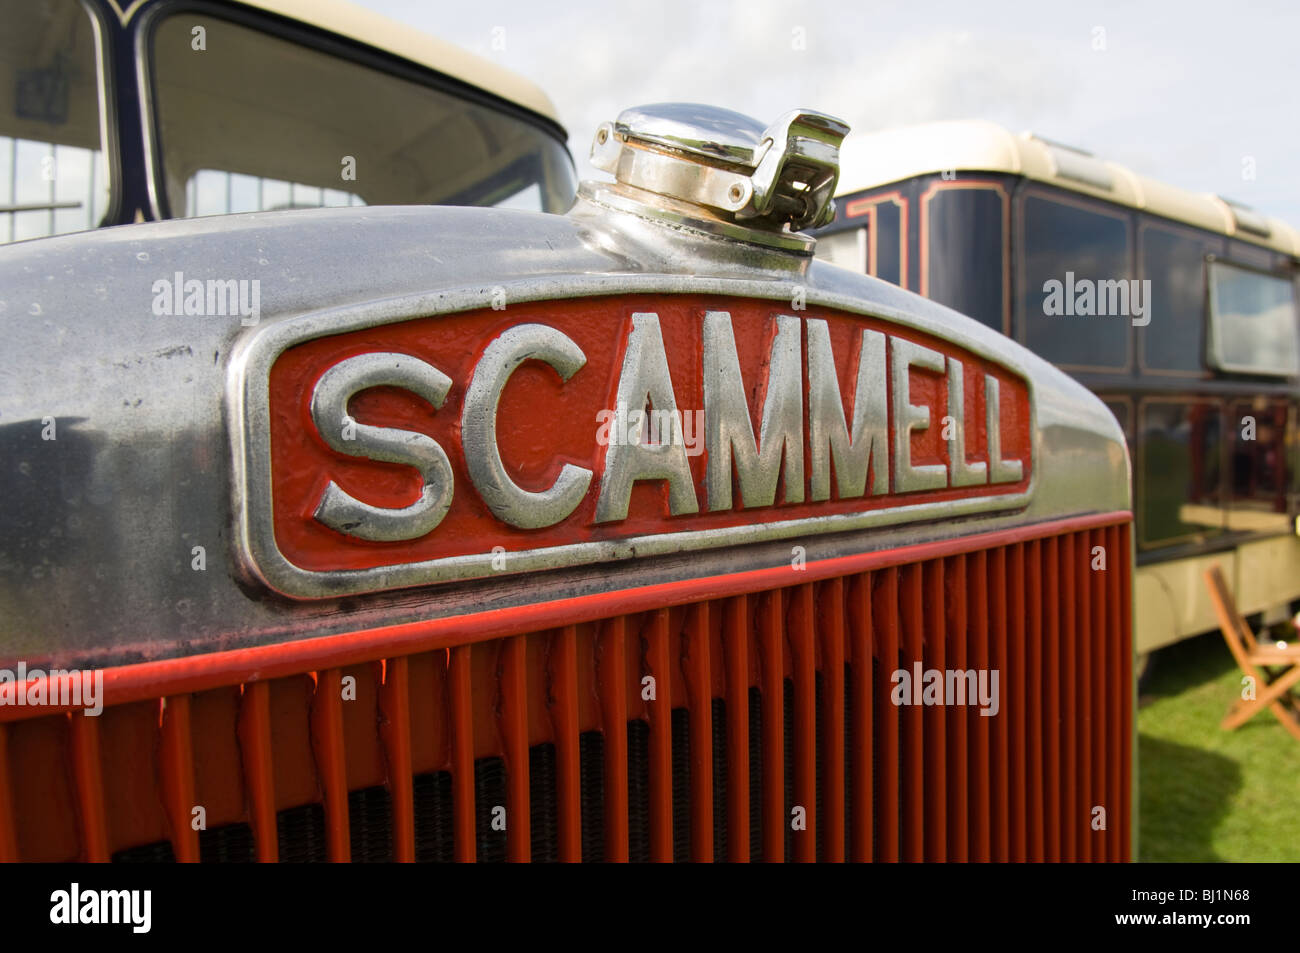 Close up of the Scammell logo on the front of a vintage lorry - Stock Image